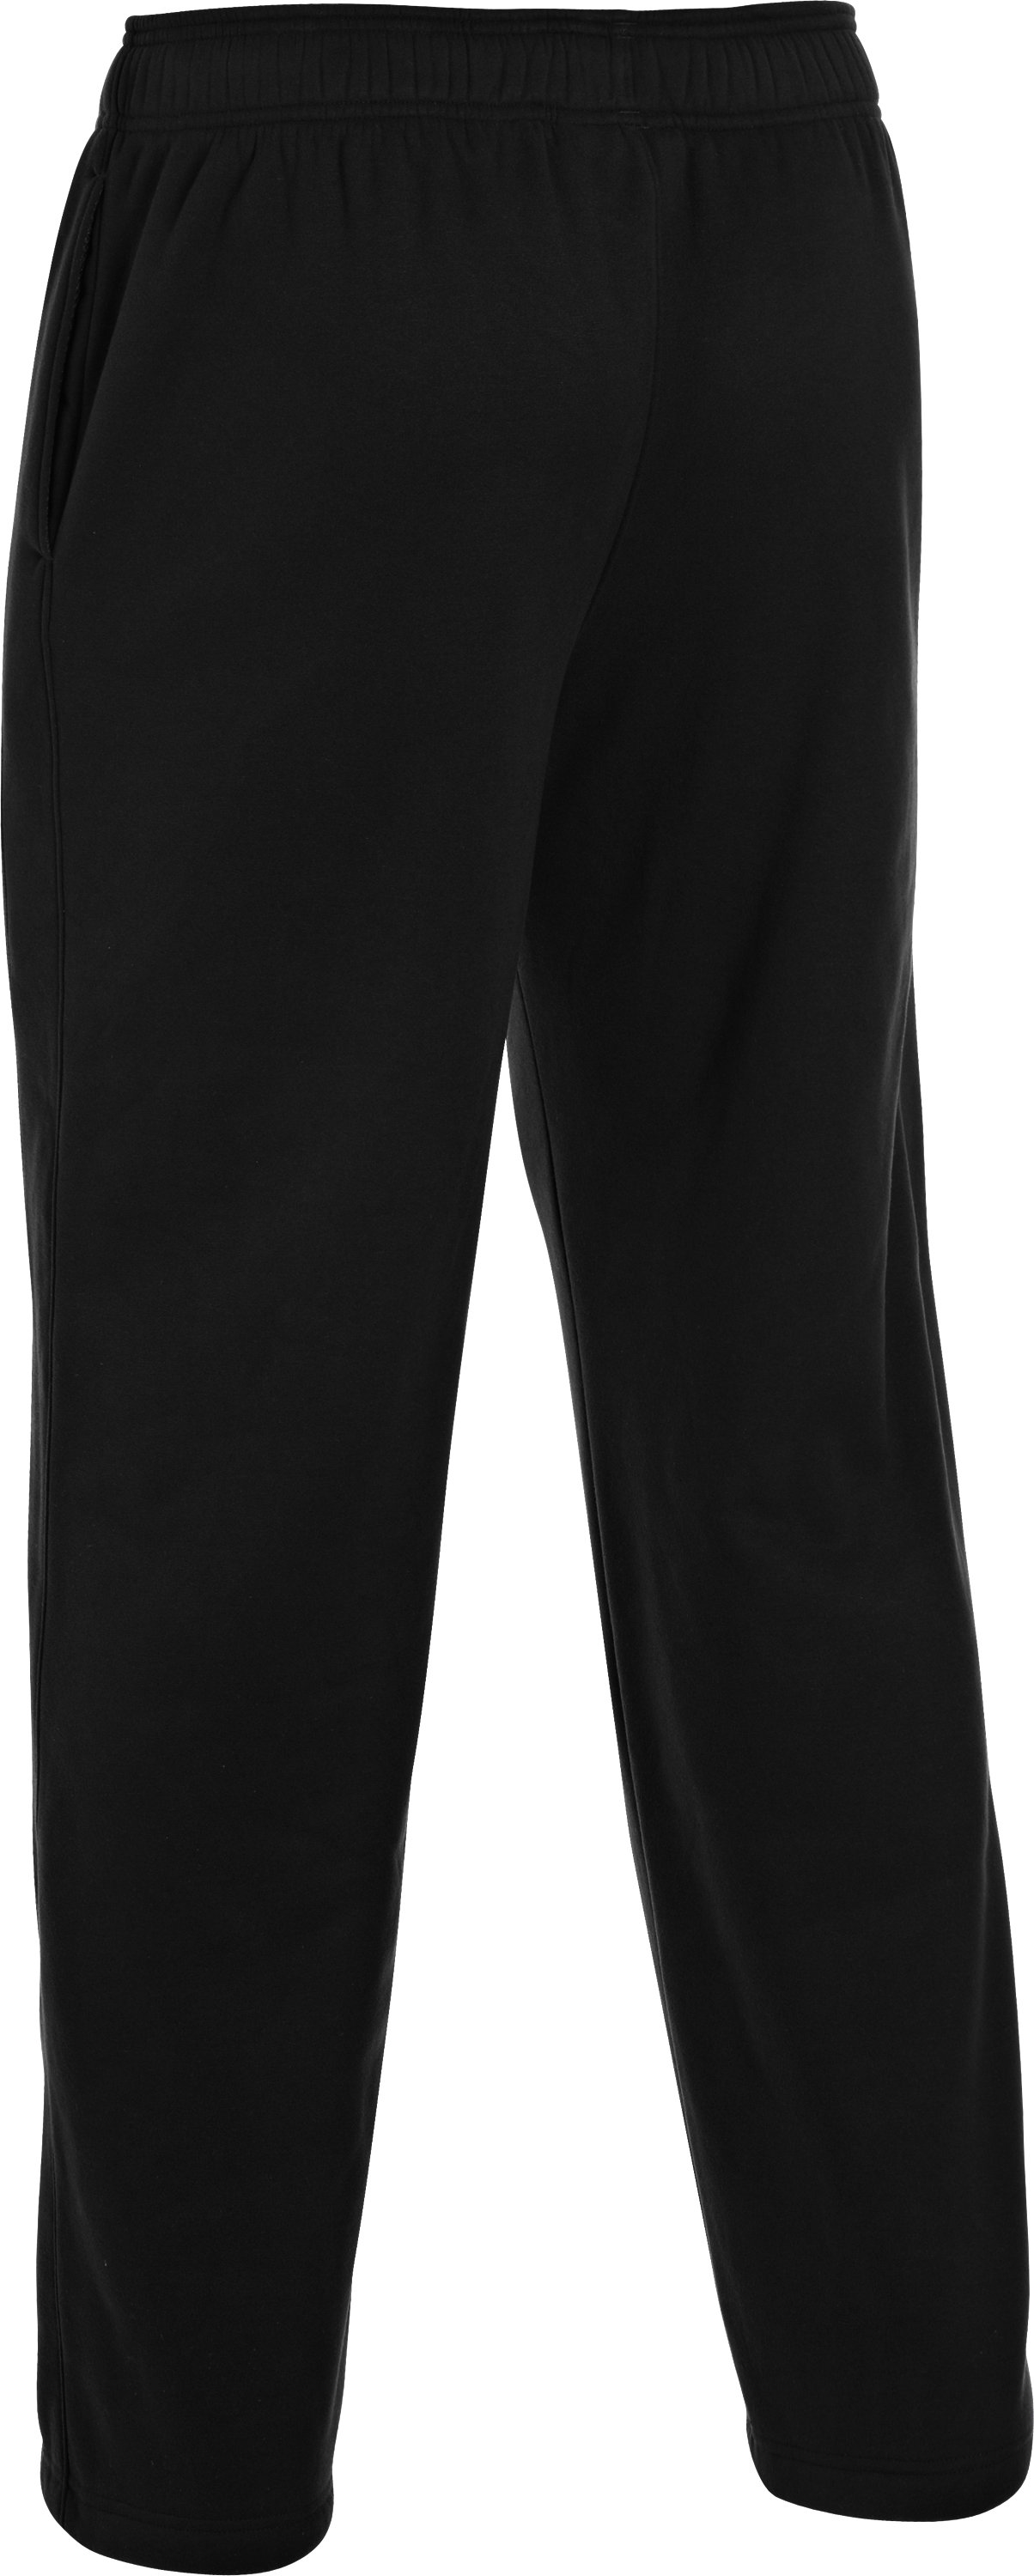 Men's Extreme ColdGear® Lite Fleece Pants, Black